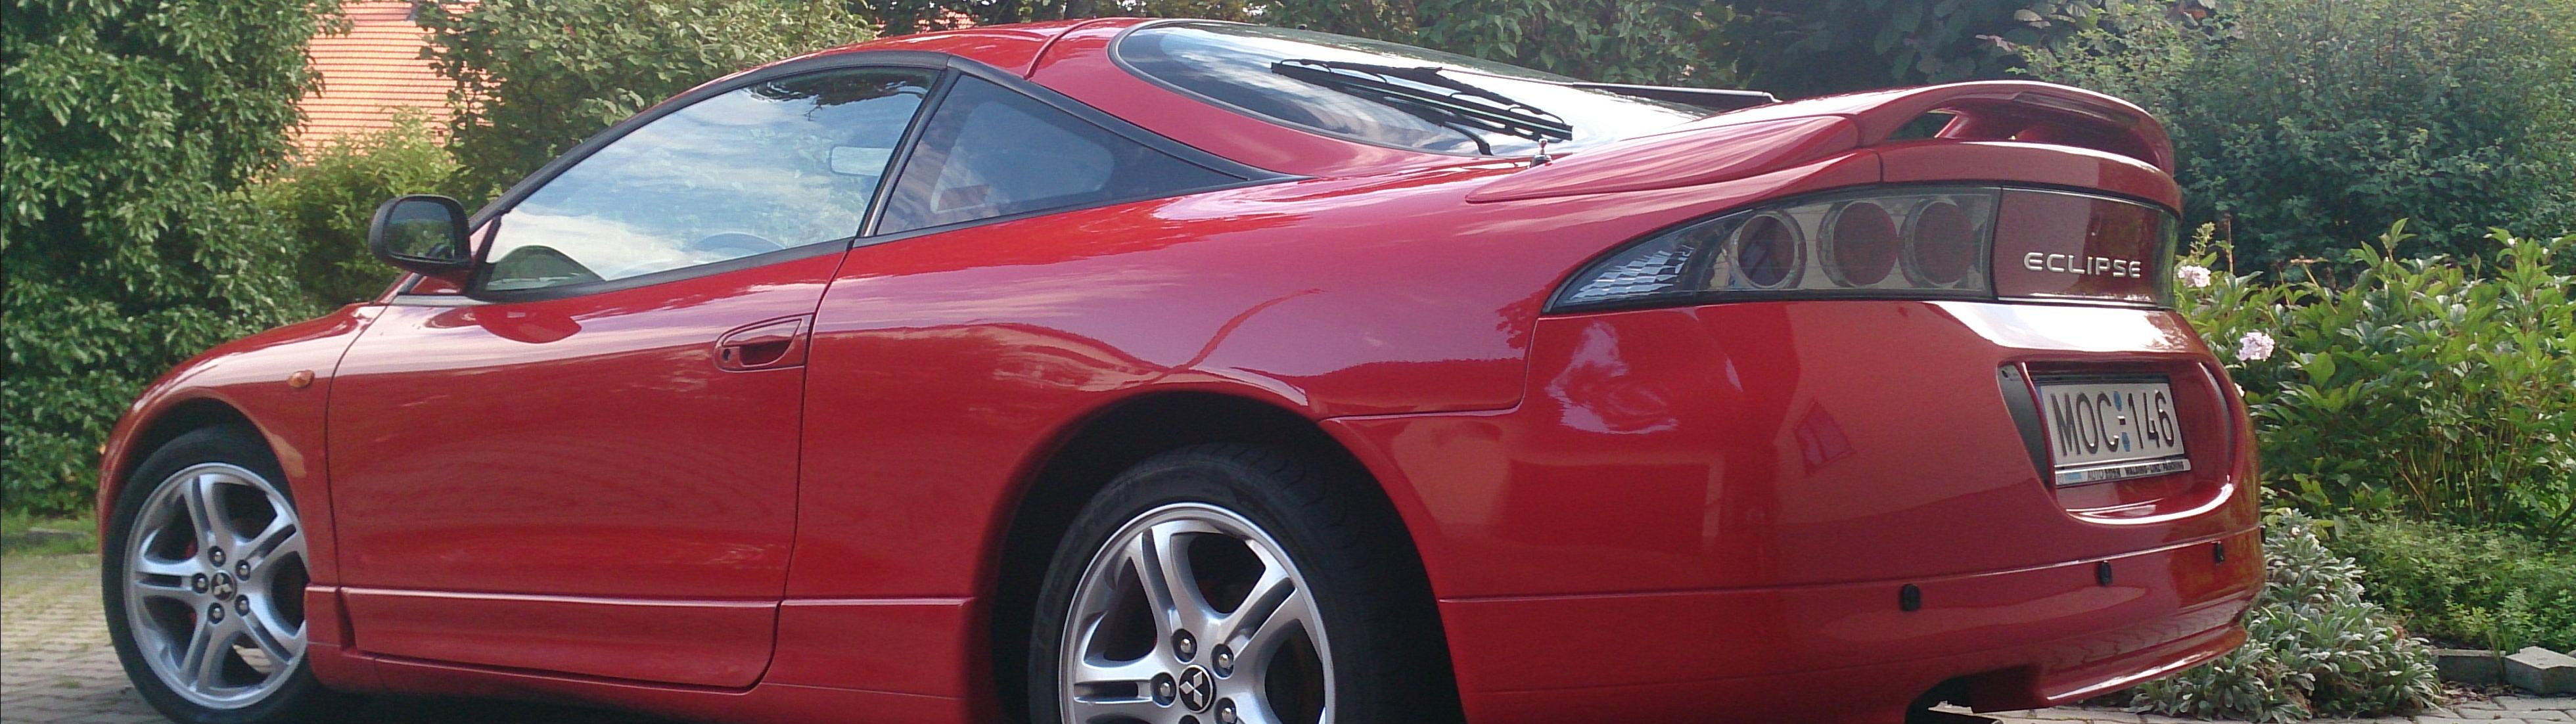 1996 Mitsubishi Eclipse